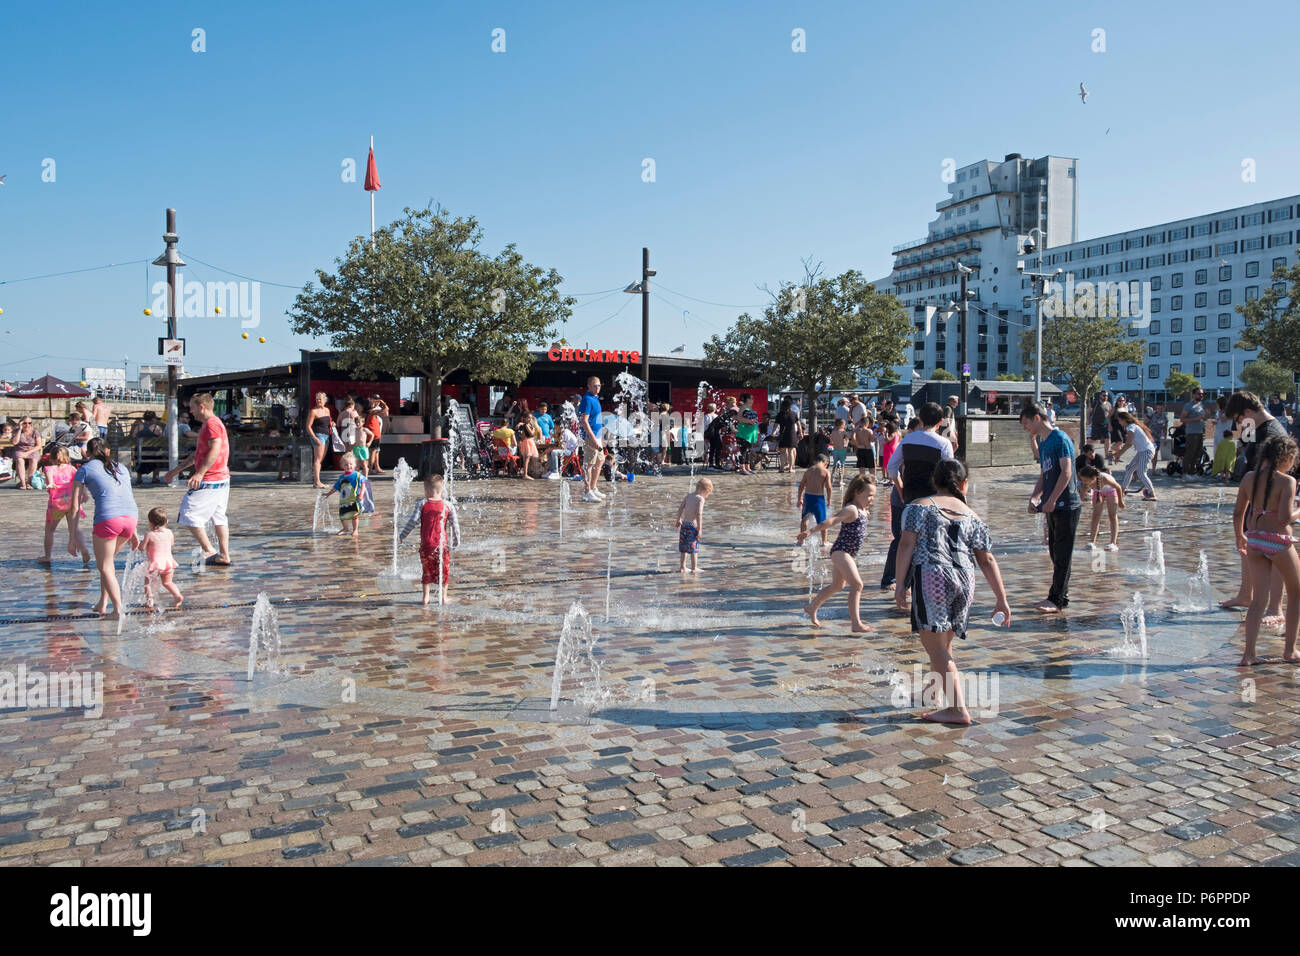 Children playing in the water spout fountains at Folkestone Harbour, Kent, UK - Stock Image